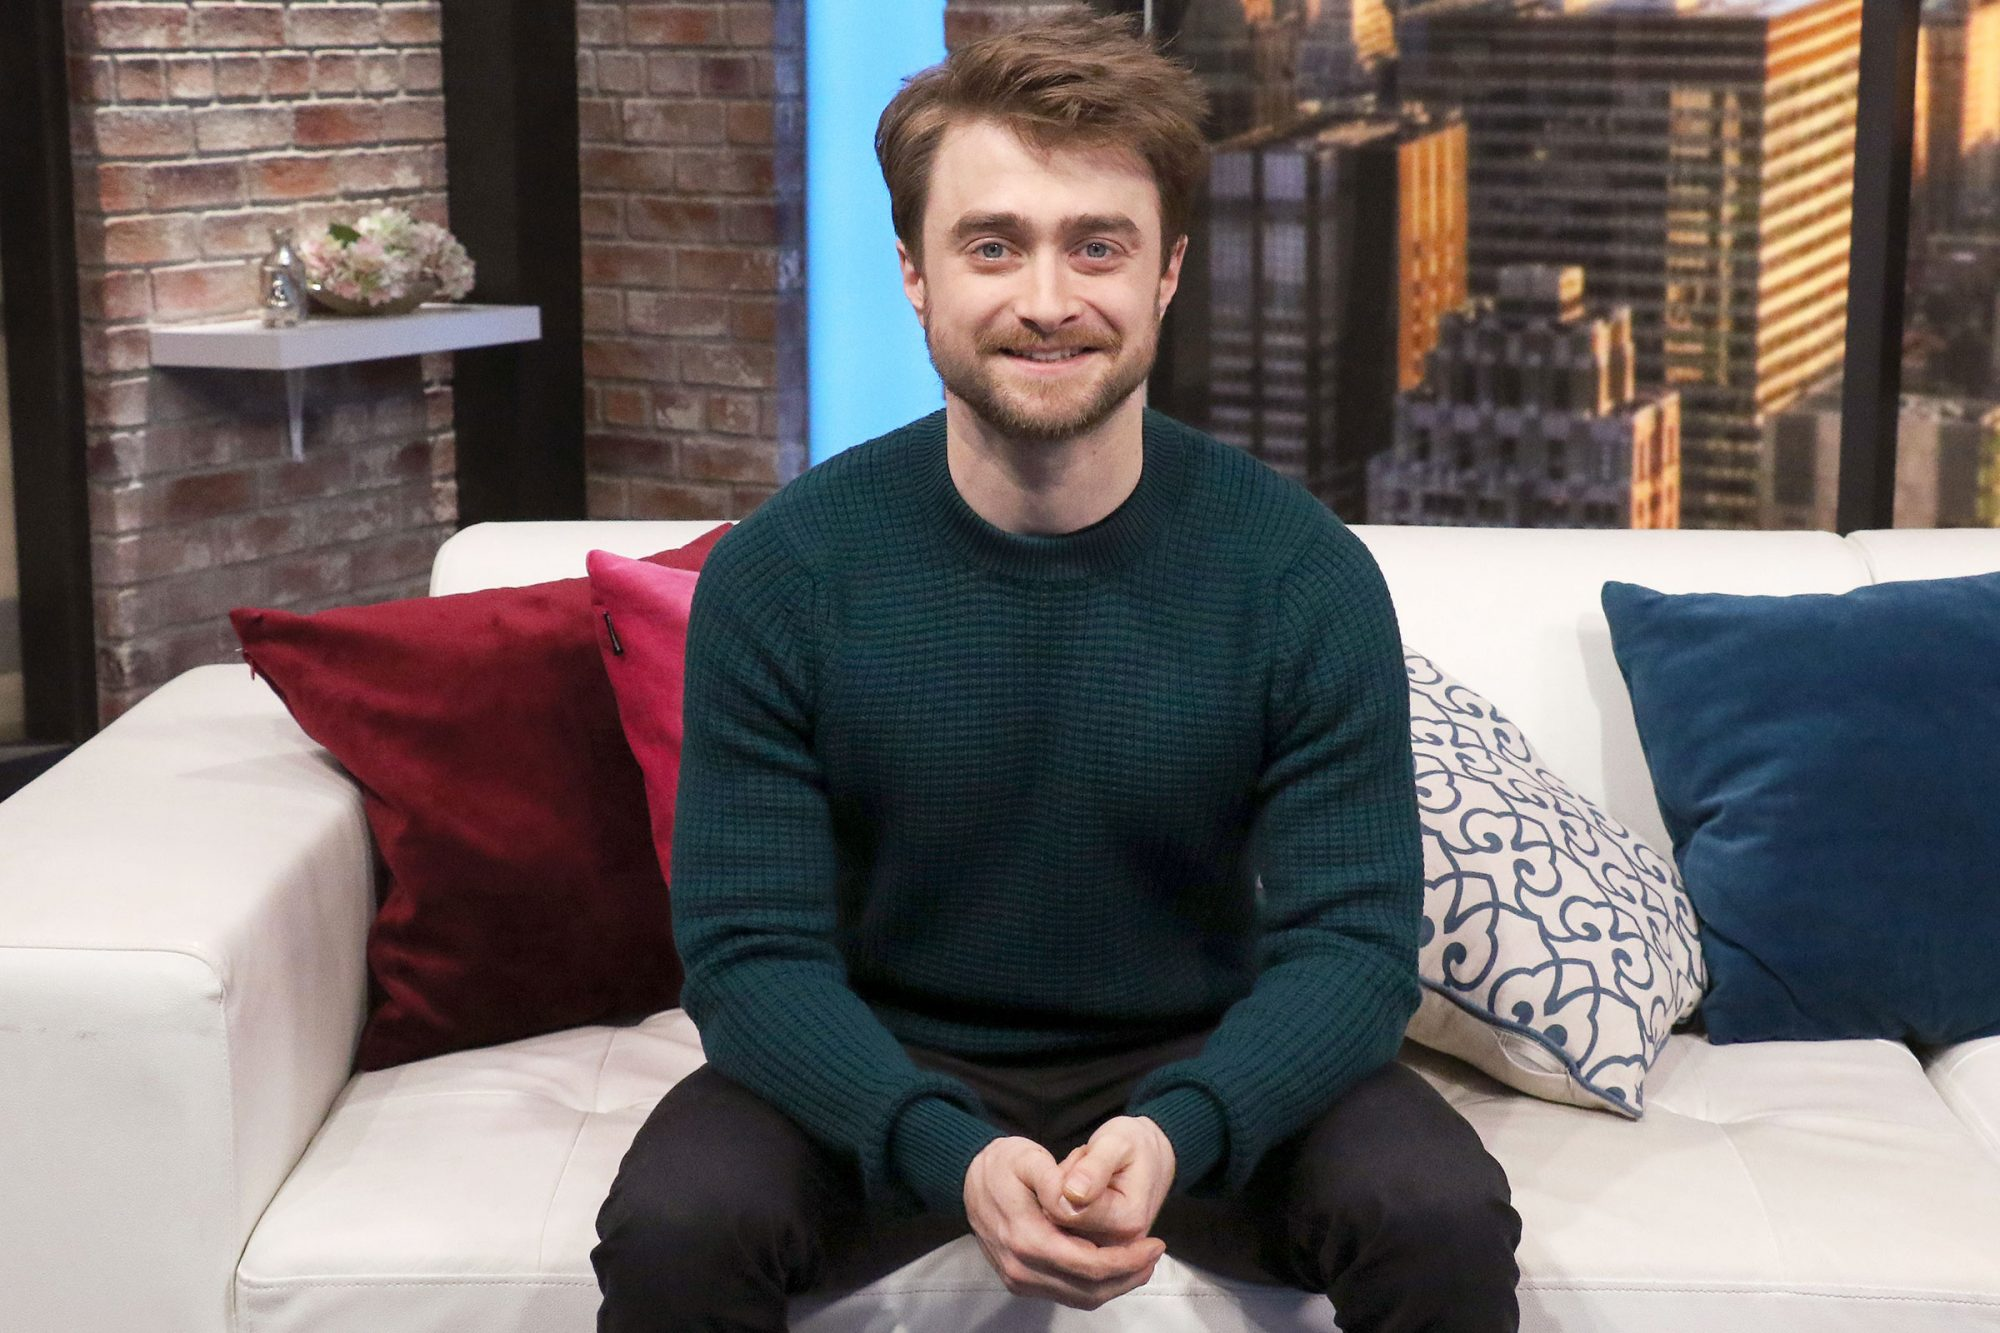 Daniel Radcliffe visits People Now on December 06, 2019 in New York, United States. (Photo by Jim Spellman/Getty Images)